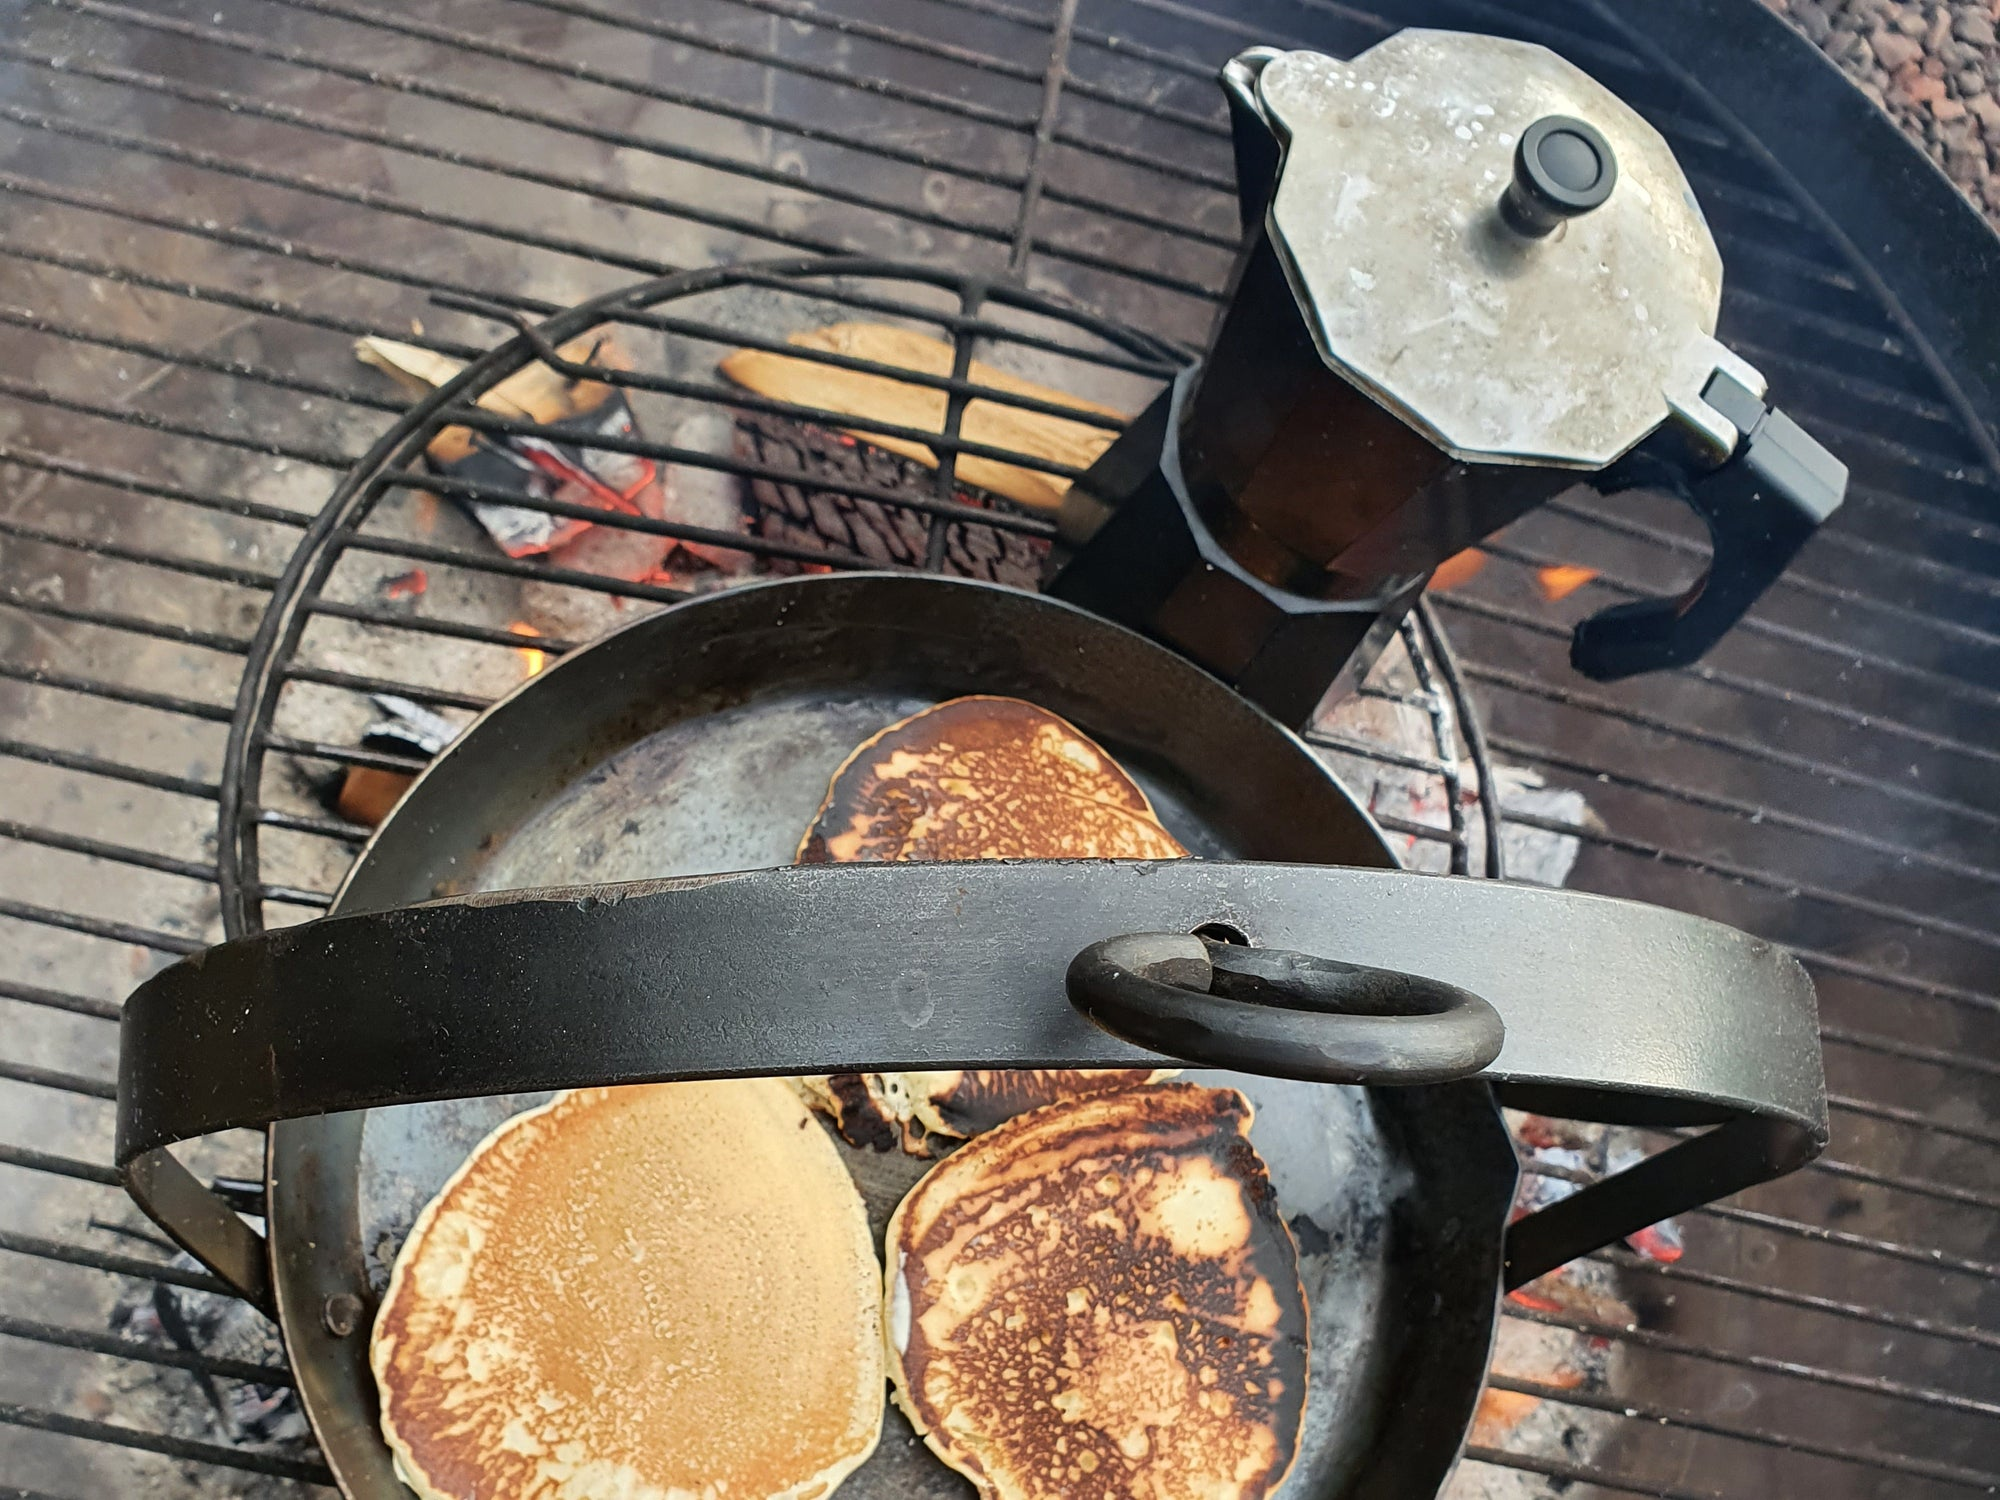 Pancakes! Just add coffee for a perfect start to your weekend.